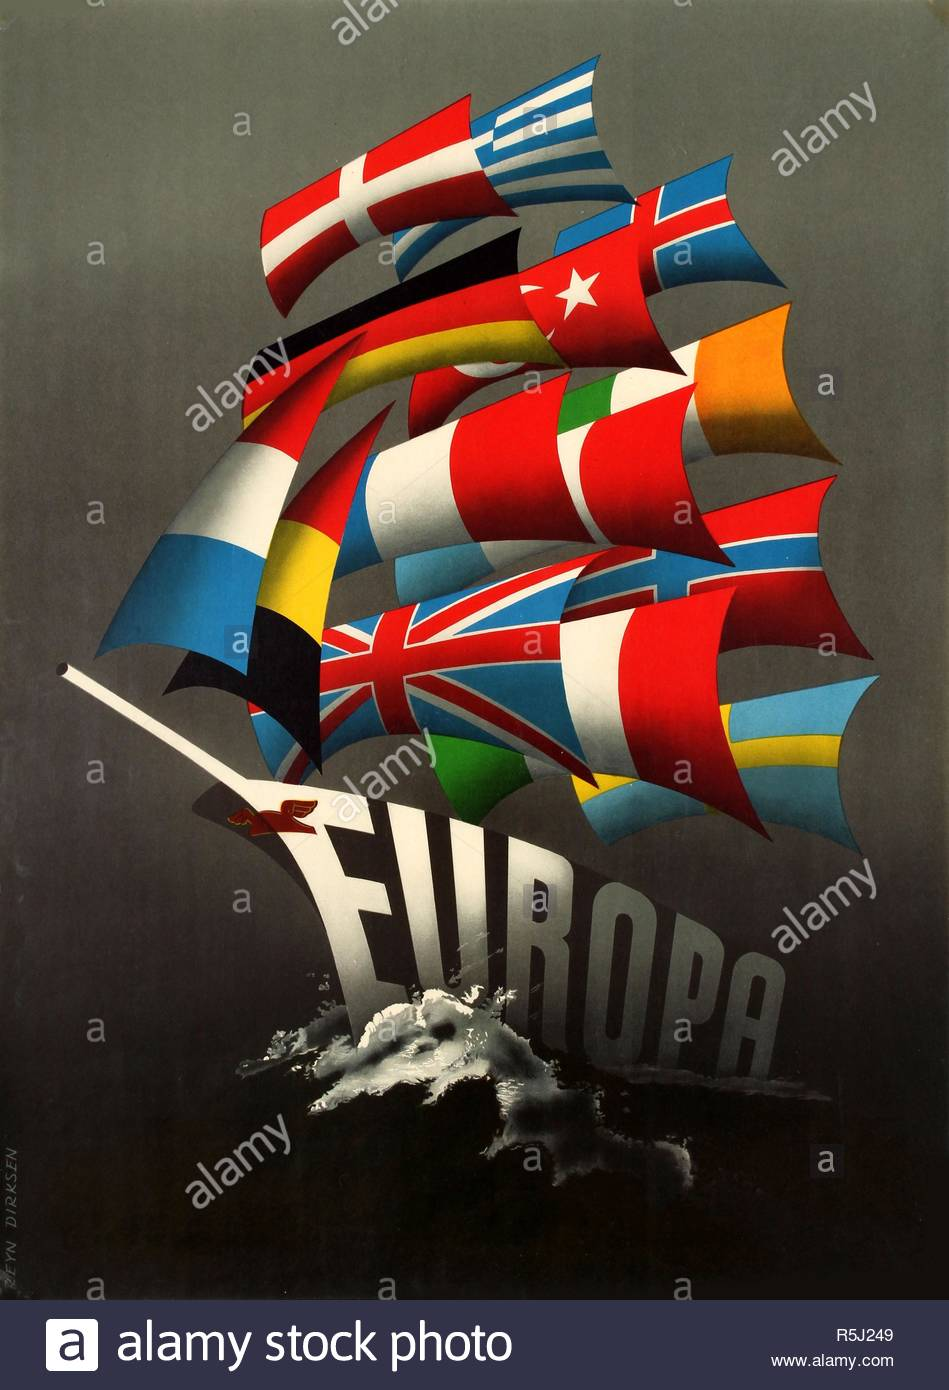 Europa. Marshall Plan. Museum: PRIVATE COLLECTION. Author: Dirksen, Reyn. Copyright: This artwork is not in public domain. It is your responsibility to obtain all necessary third party permissions from the copyright handler in your country prior to publication. Stock Photo